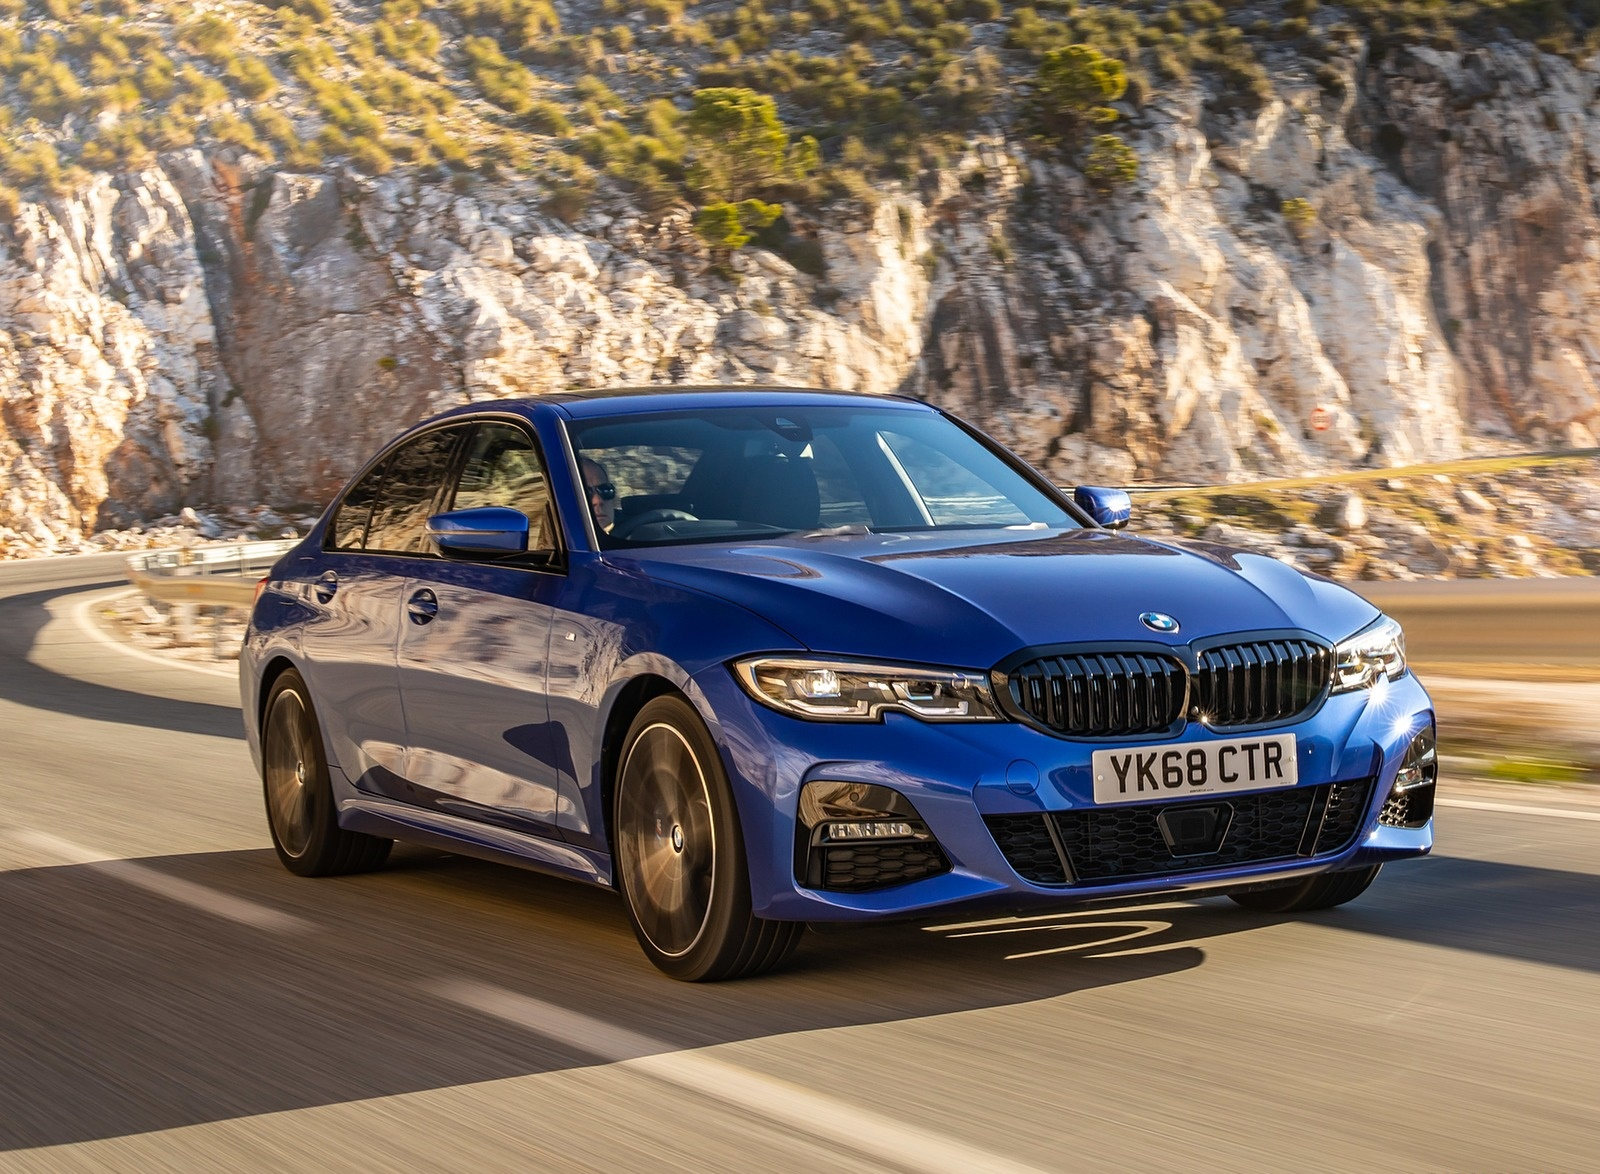 2019 BMW 3-Series Saloon 320d xDrive (UK-Spec) Front Three-Quarter Wallpapers (3)